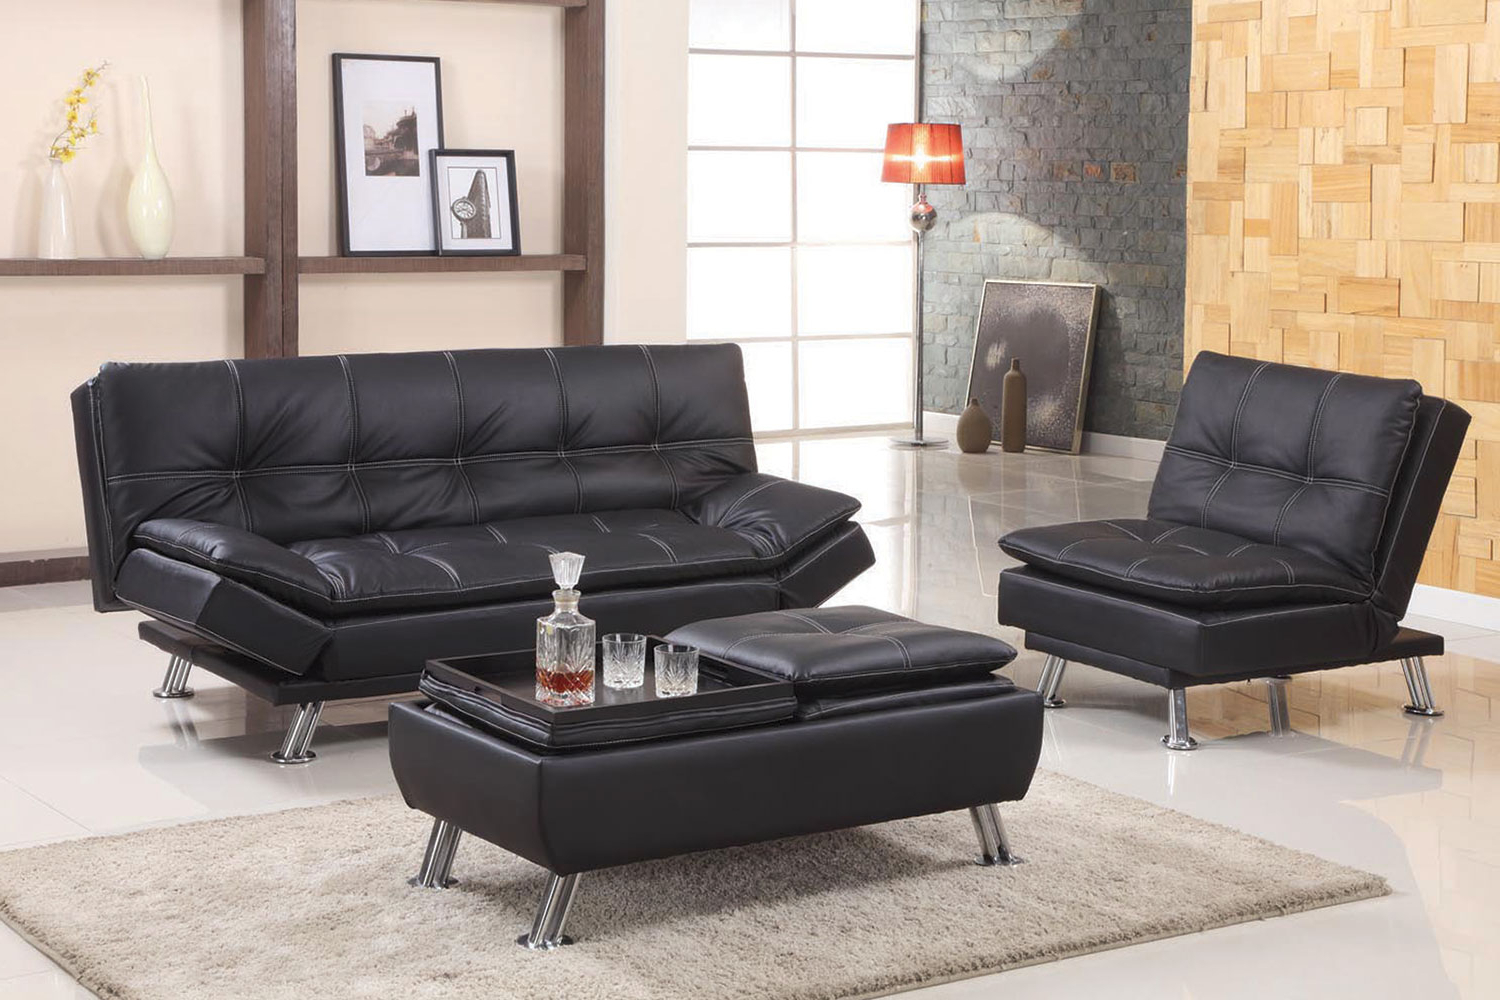 Easton Small Space Sectional Futon Sofas Inside Most Recent Black Or Brown Adjustable Futon Sofa (View 10 of 20)